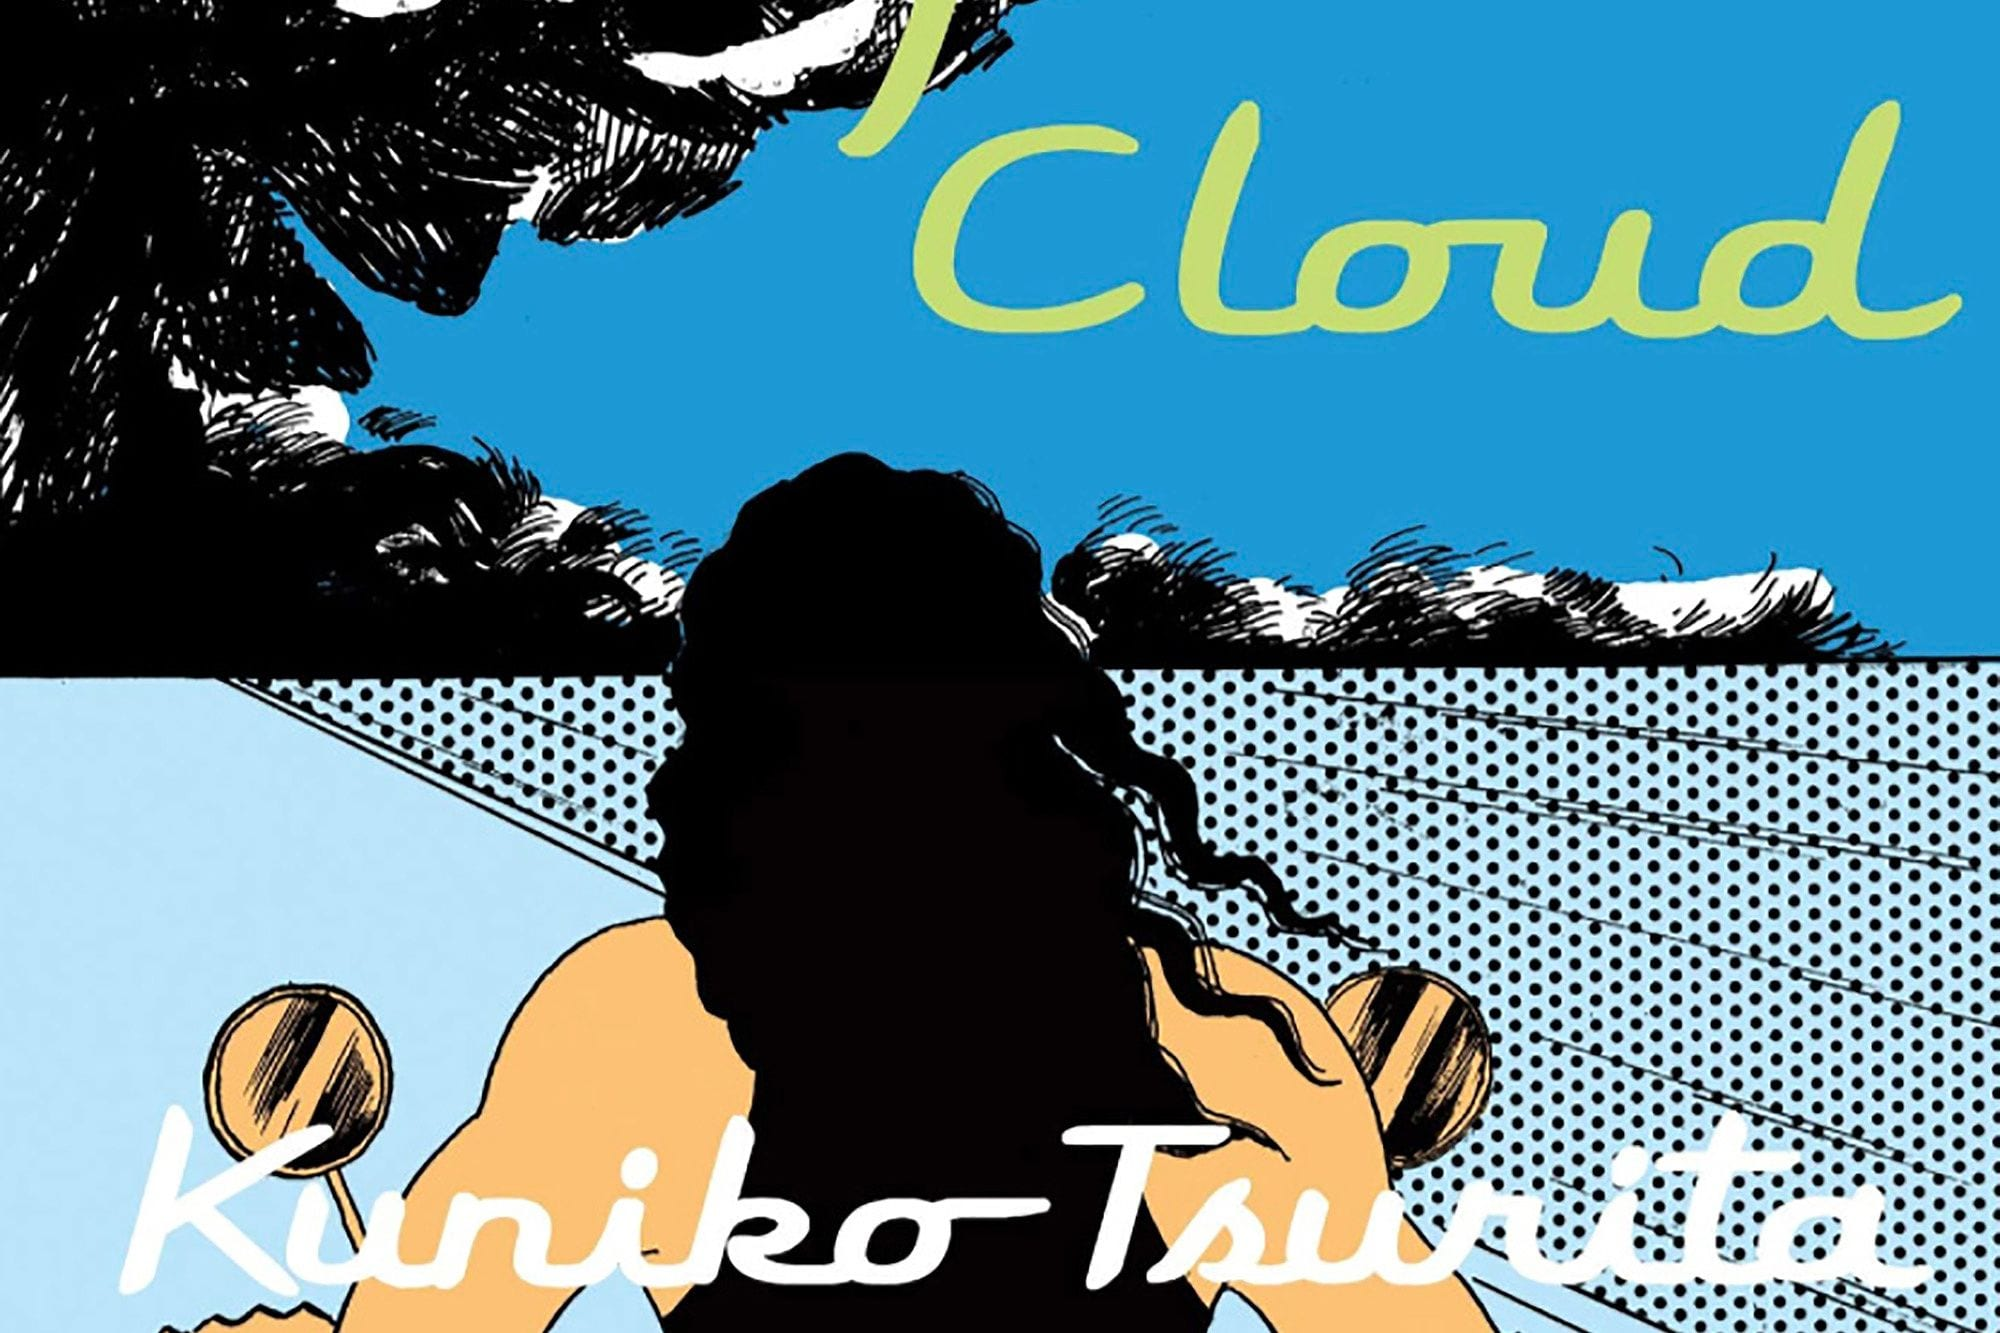 Manga 'The Sky Is Blue with a Single Cloud' Is a Superb Collection of Kuniko Tsurita's Works